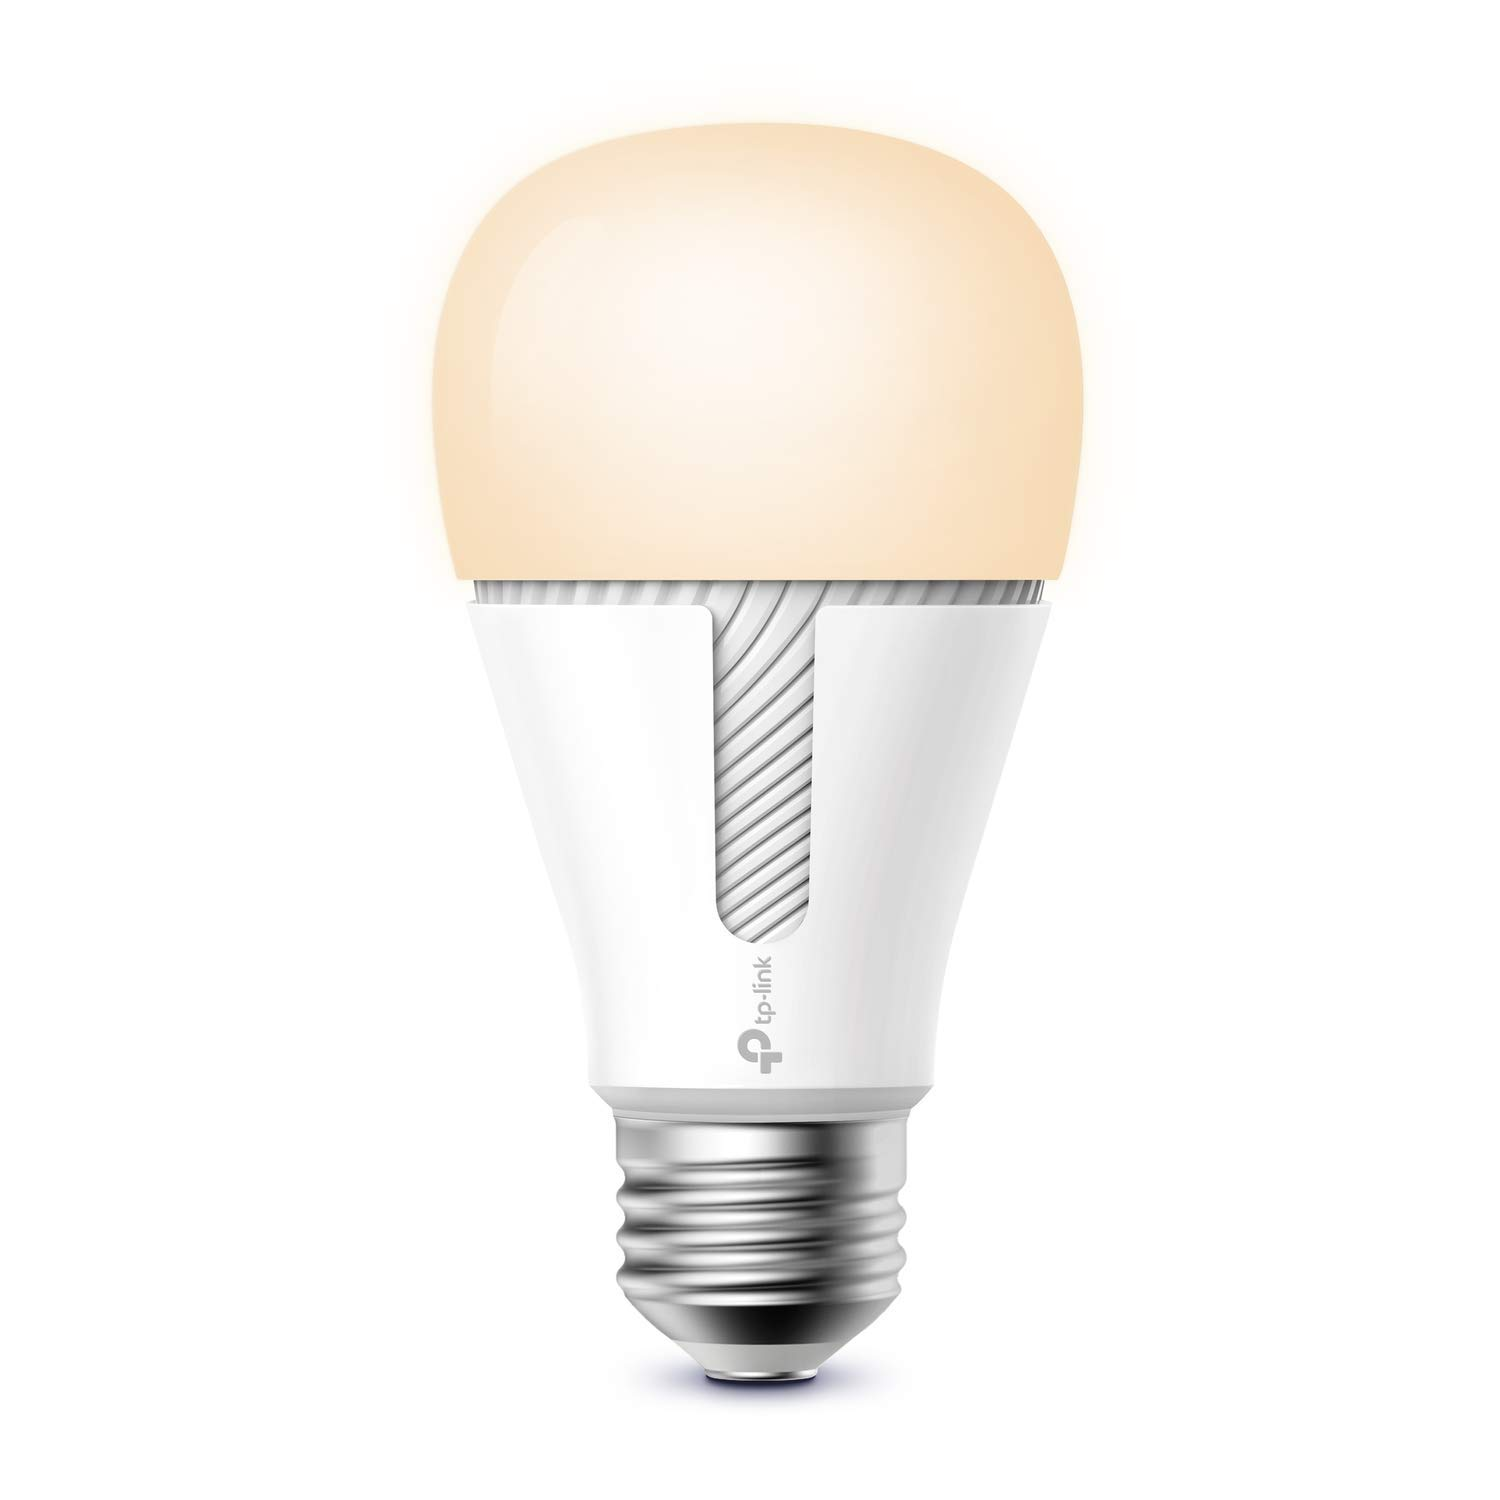 Kasa Smart Wi-Fi LED Light Bulb by TP-Link - Dimmable, A19, No Hub Required, Works with Alexa & Google Assistant, Also Available for California residents (KL110) by TP-Link (Image #2)